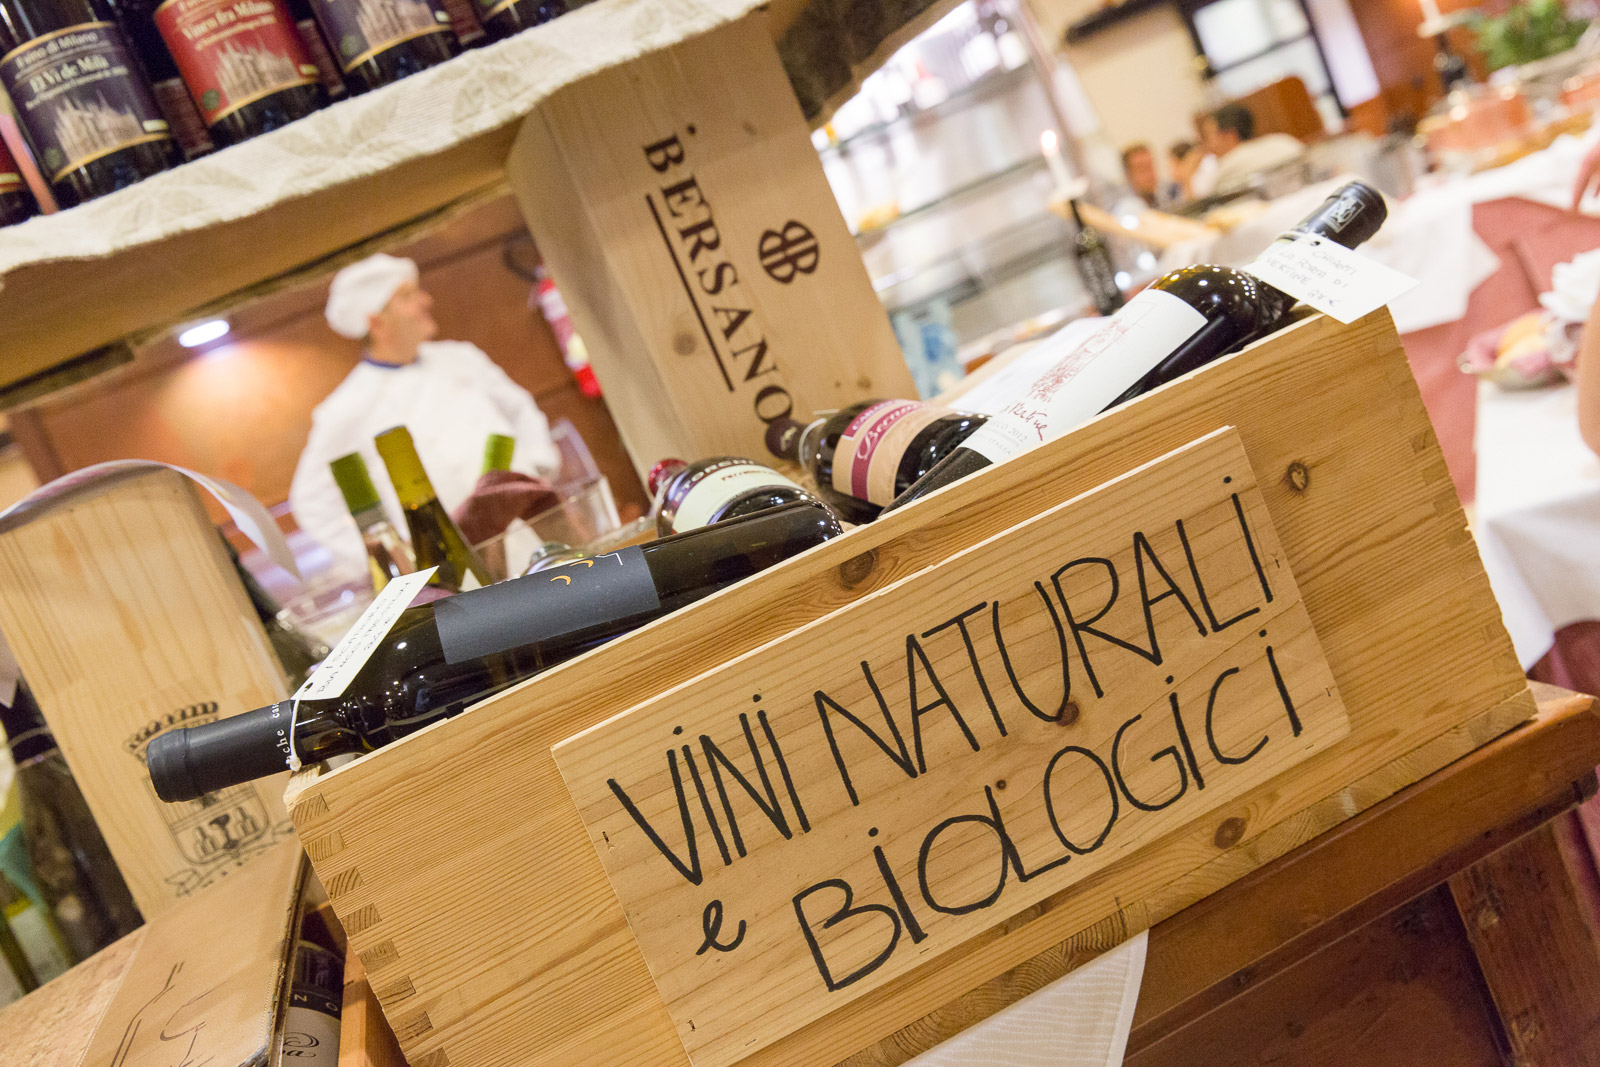 Vini naturali e biologici